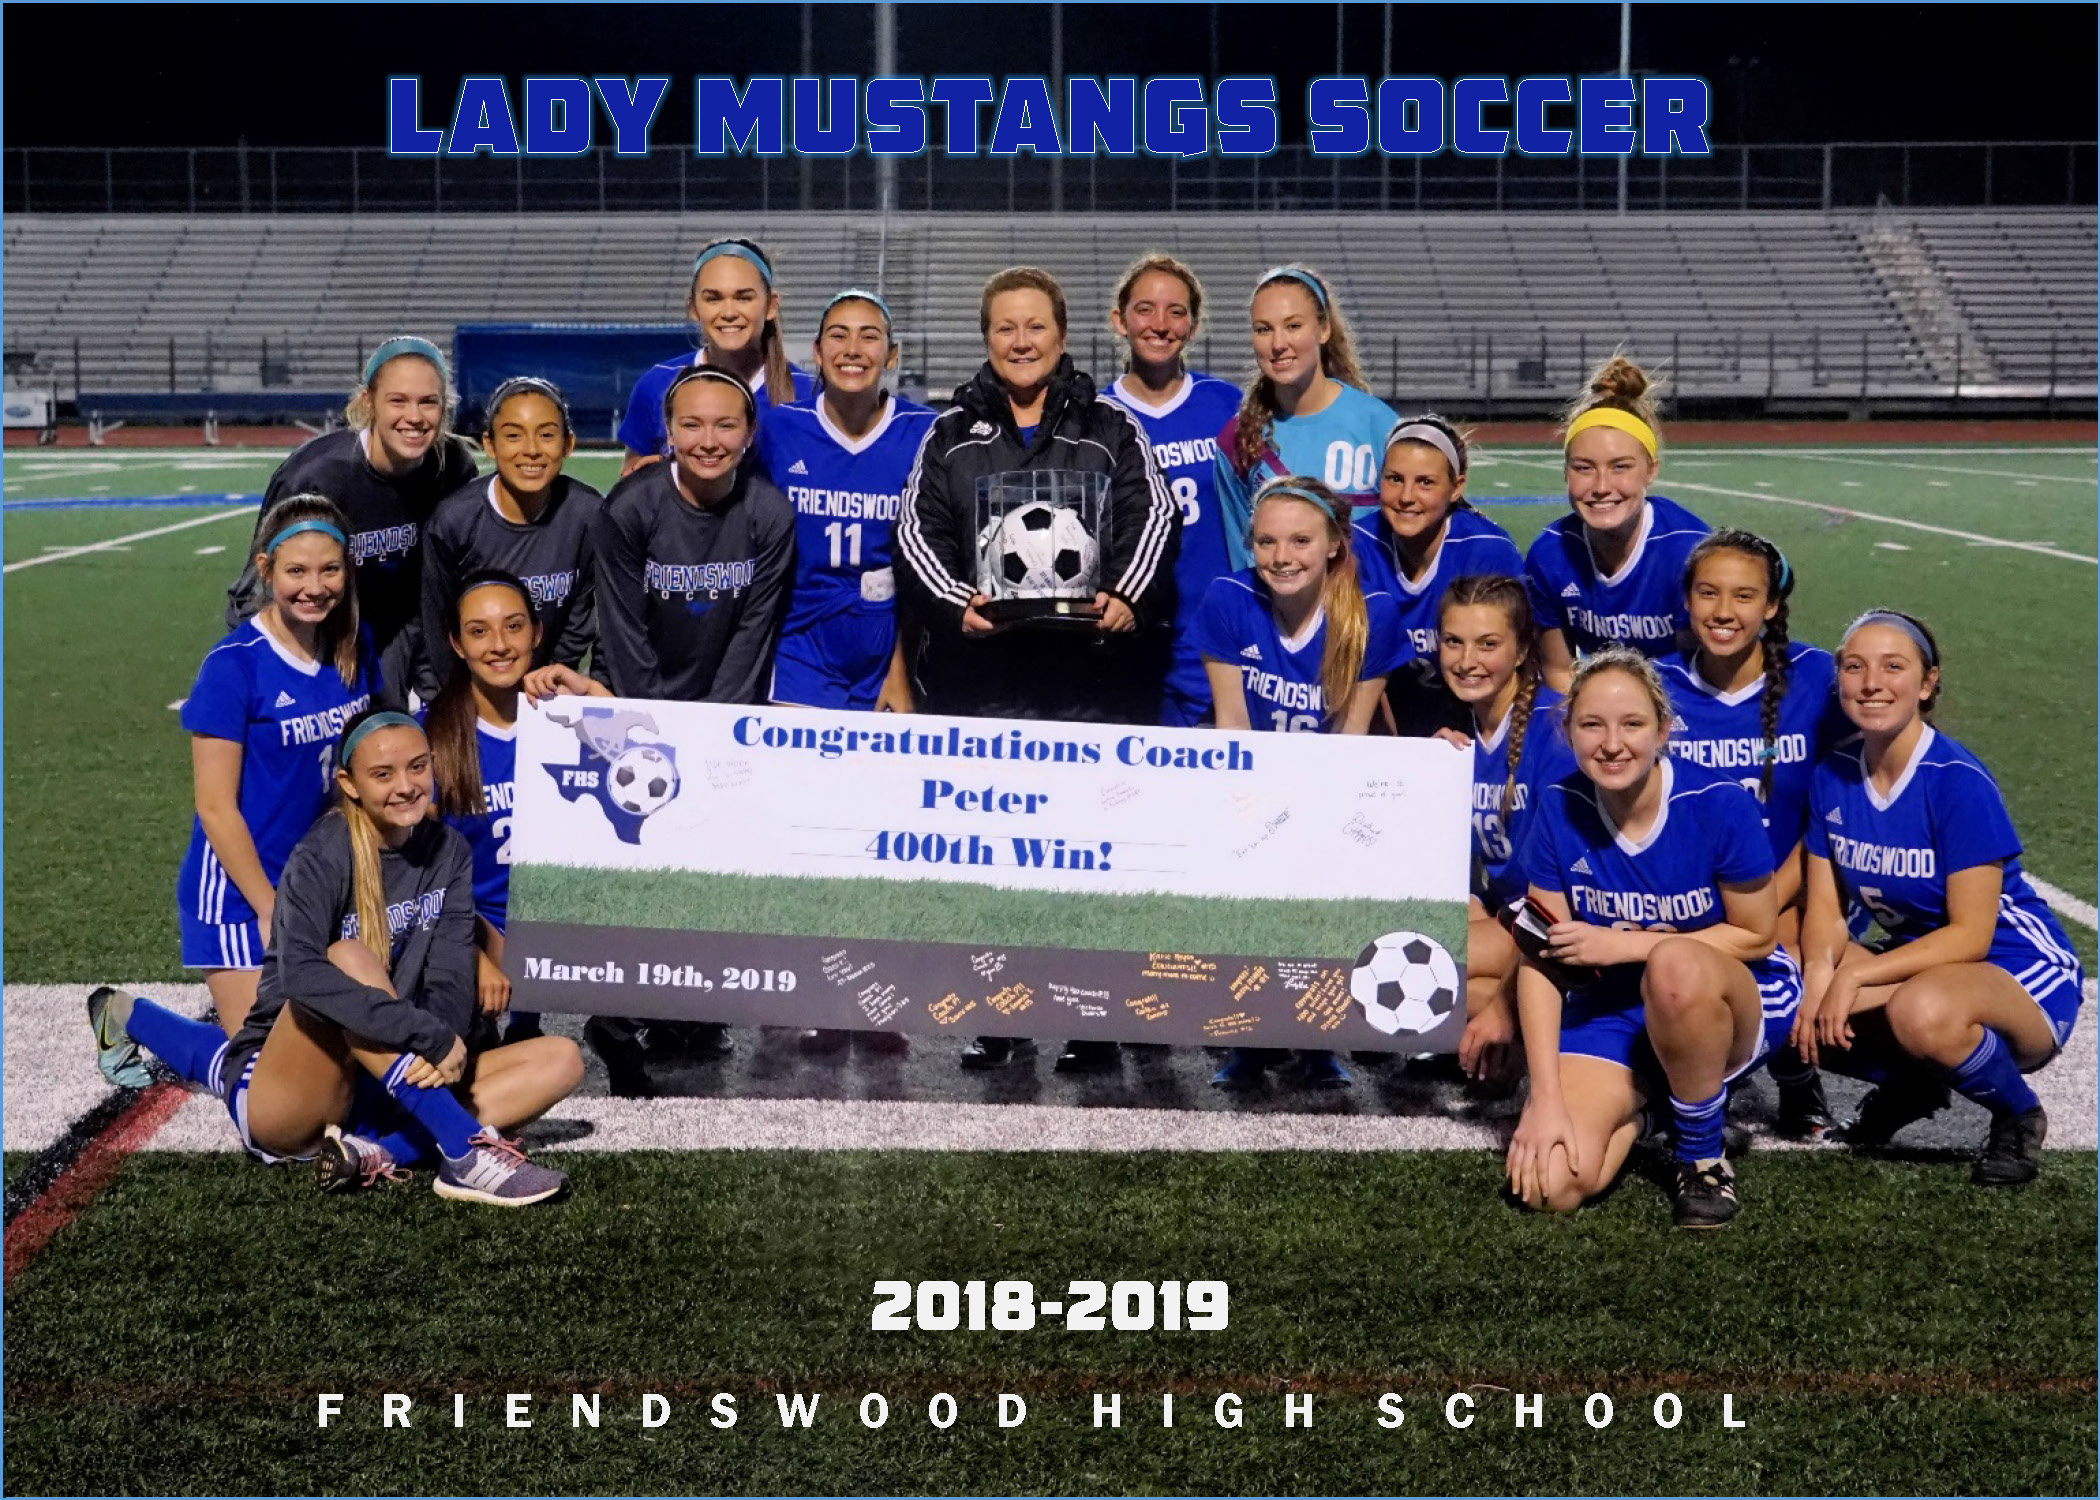 Friendswood Lady Mustangs Soccer - Home